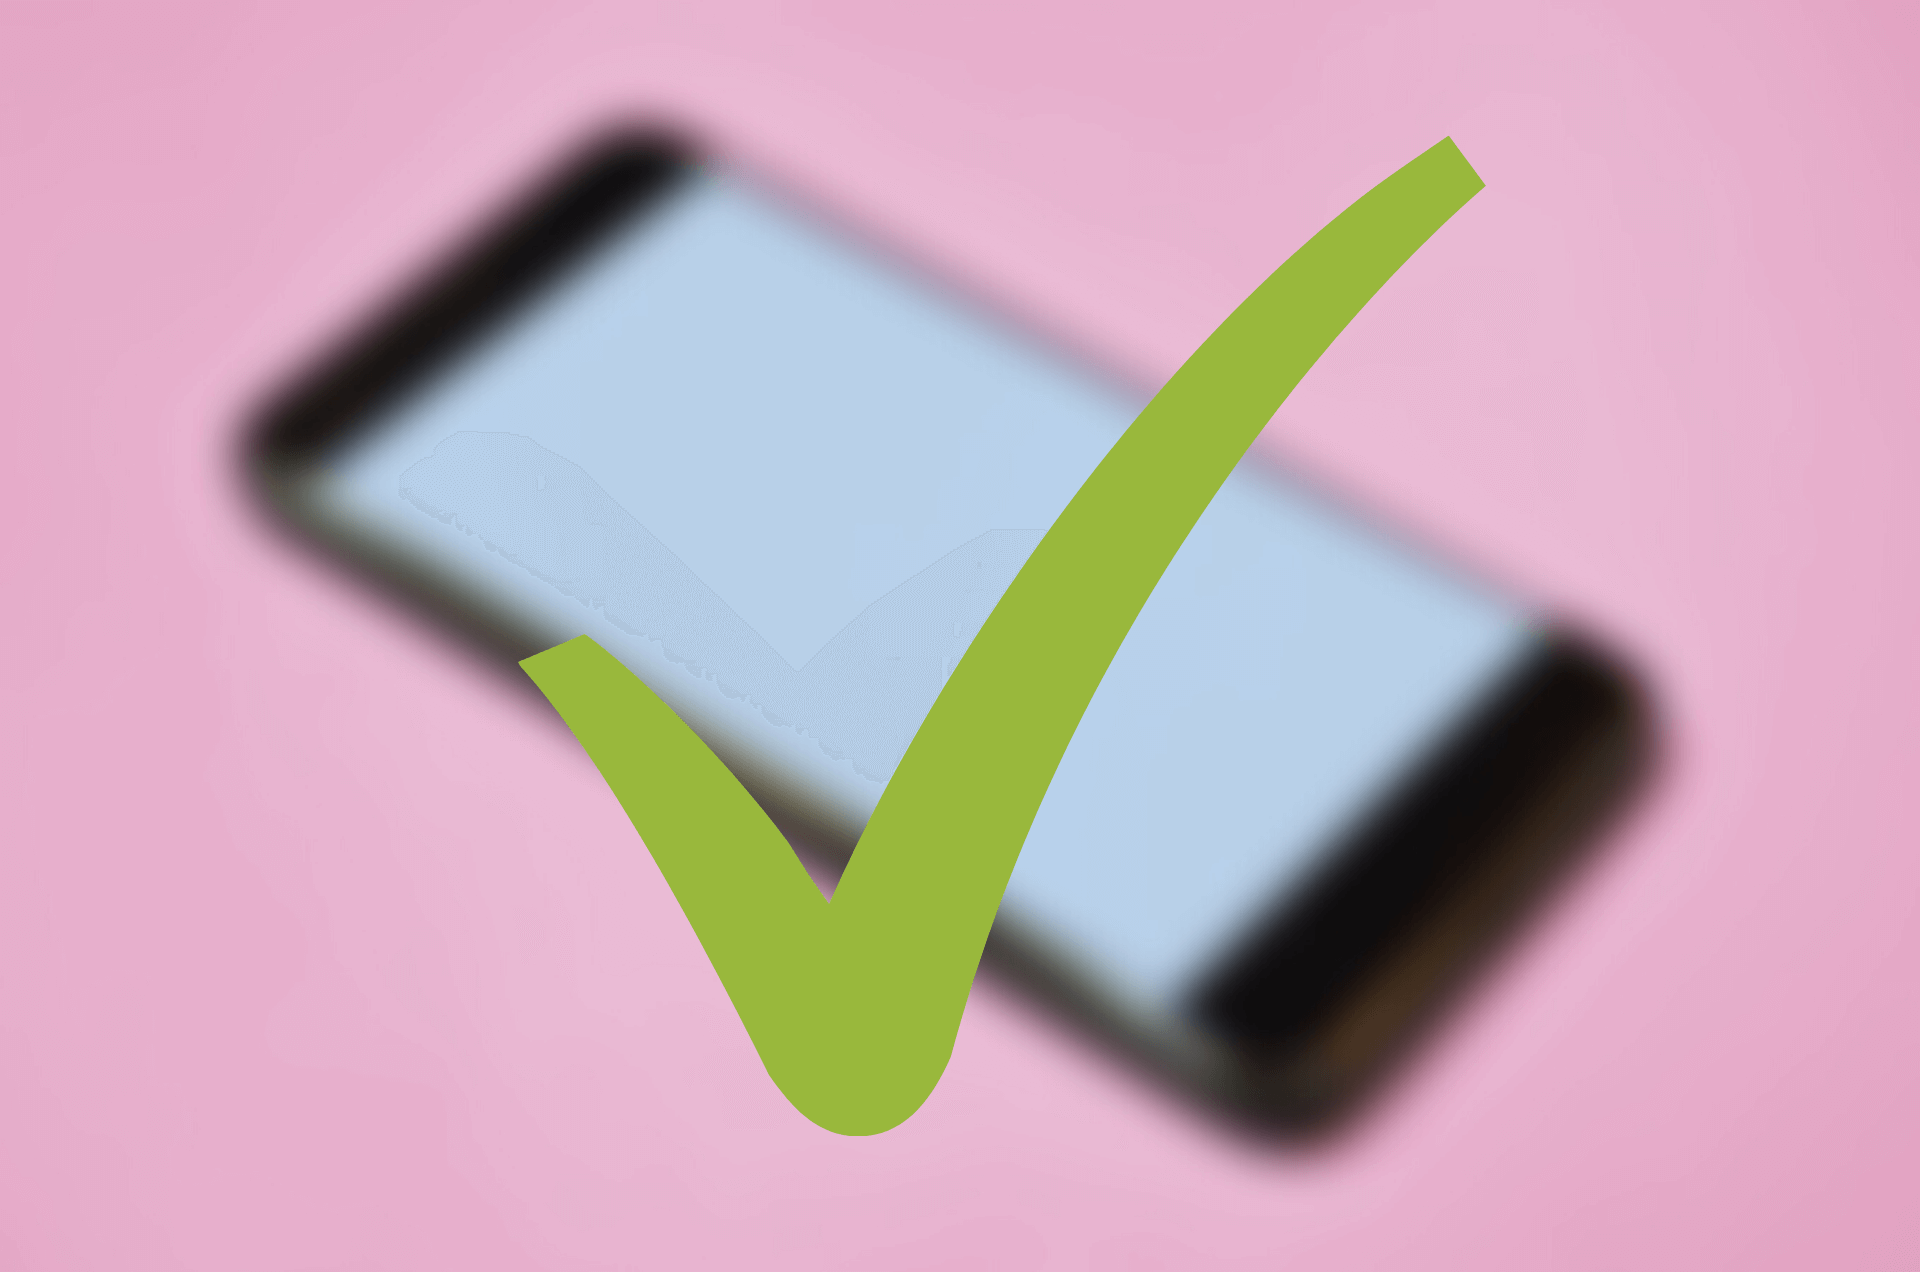 how-to-unlock-at&t-phone-eligibility